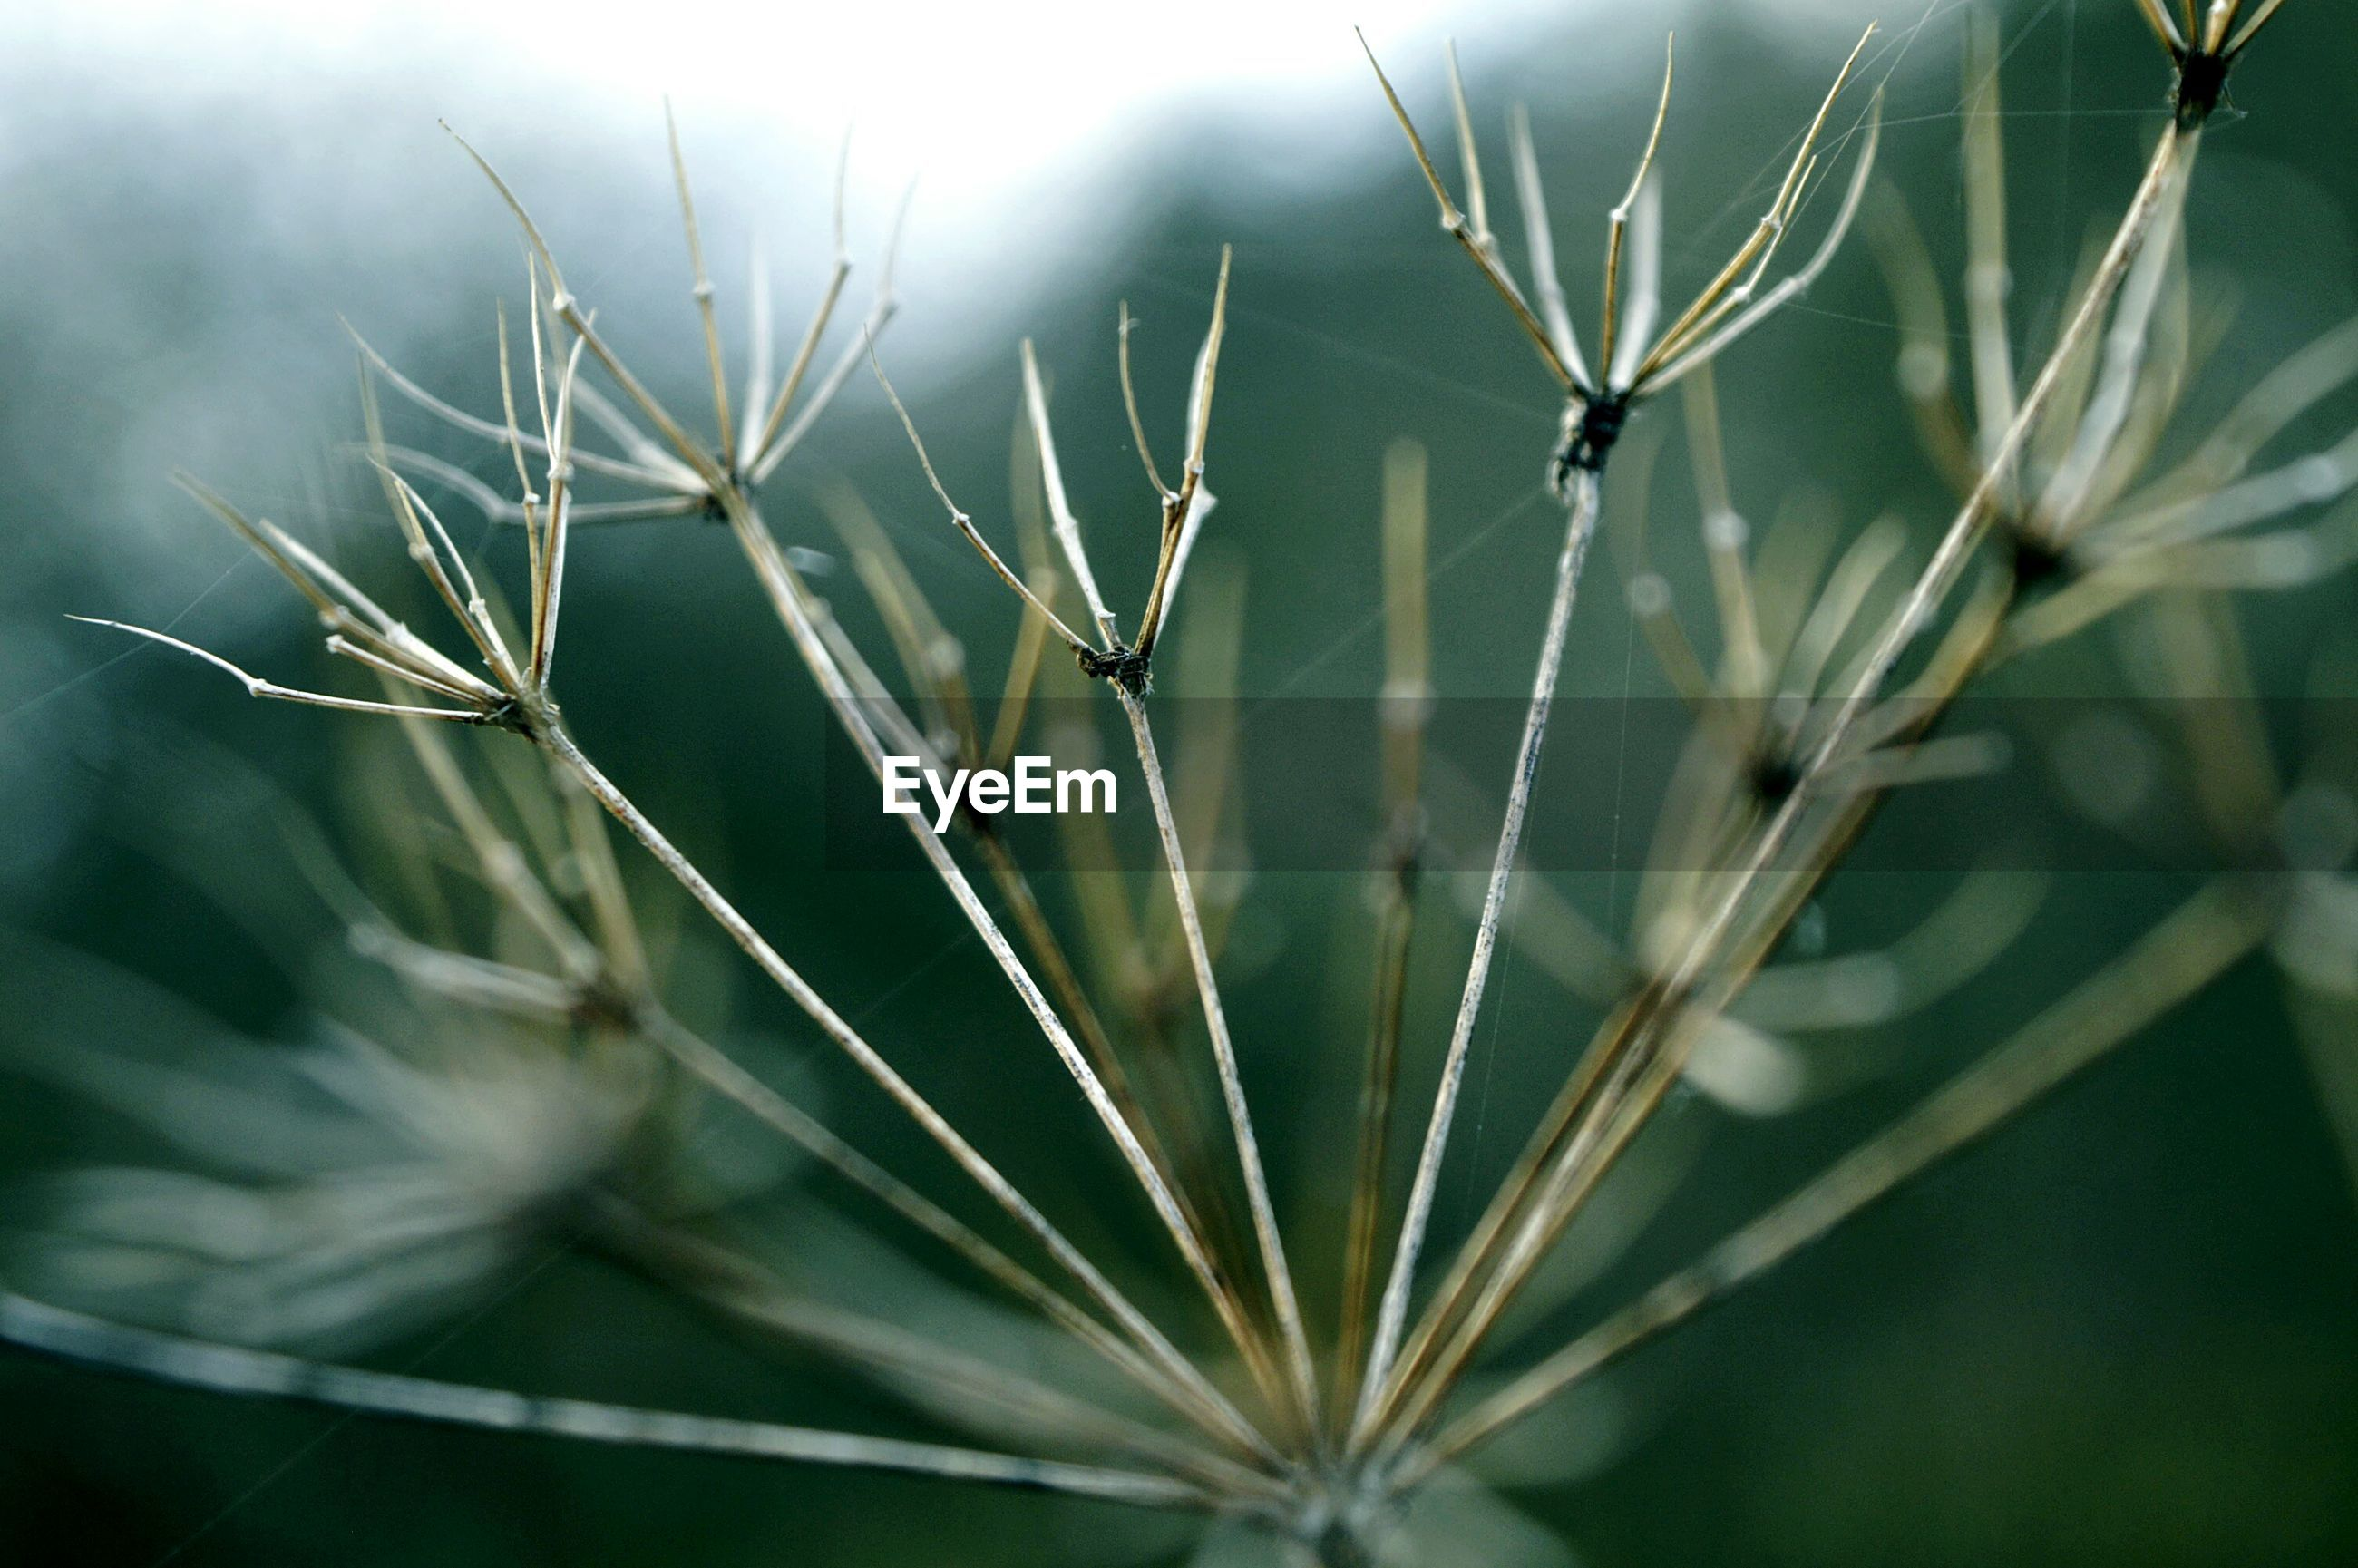 nature, close-up, growth, plant, no people, day, outdoors, focus on foreground, beauty in nature, fragility, freshness